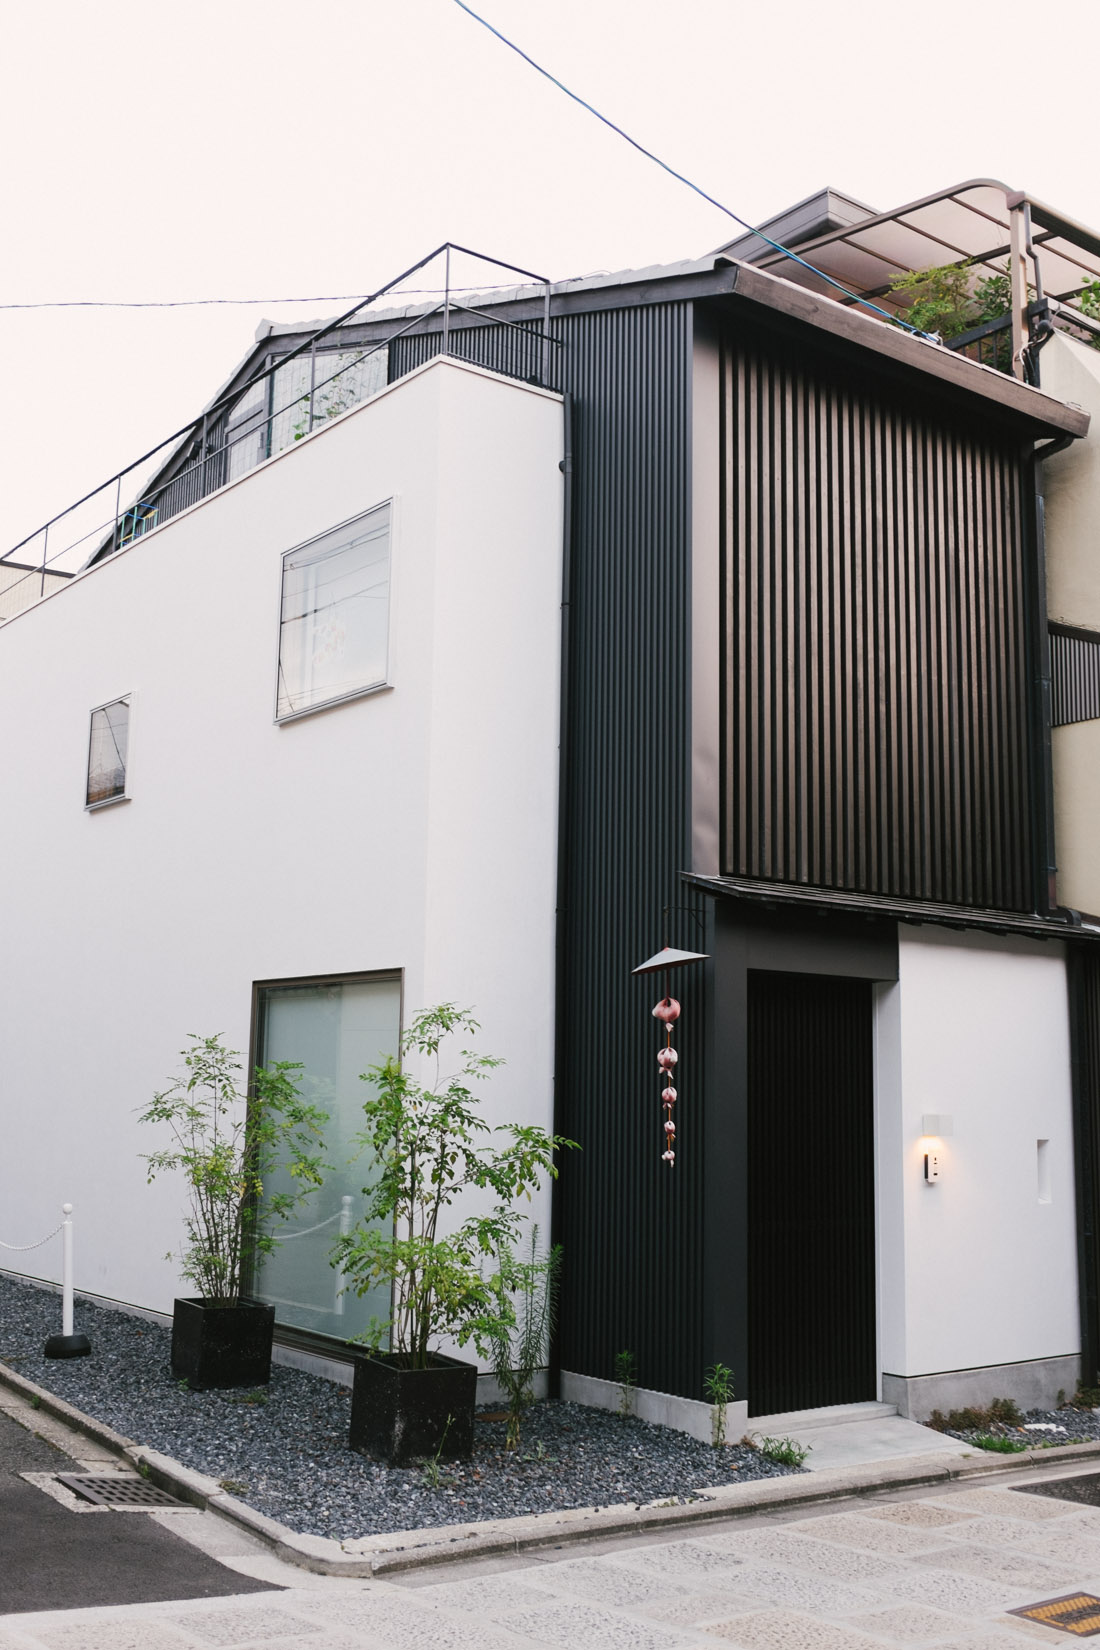 Awesome modern house in the Gion district, known for its traditional houses.